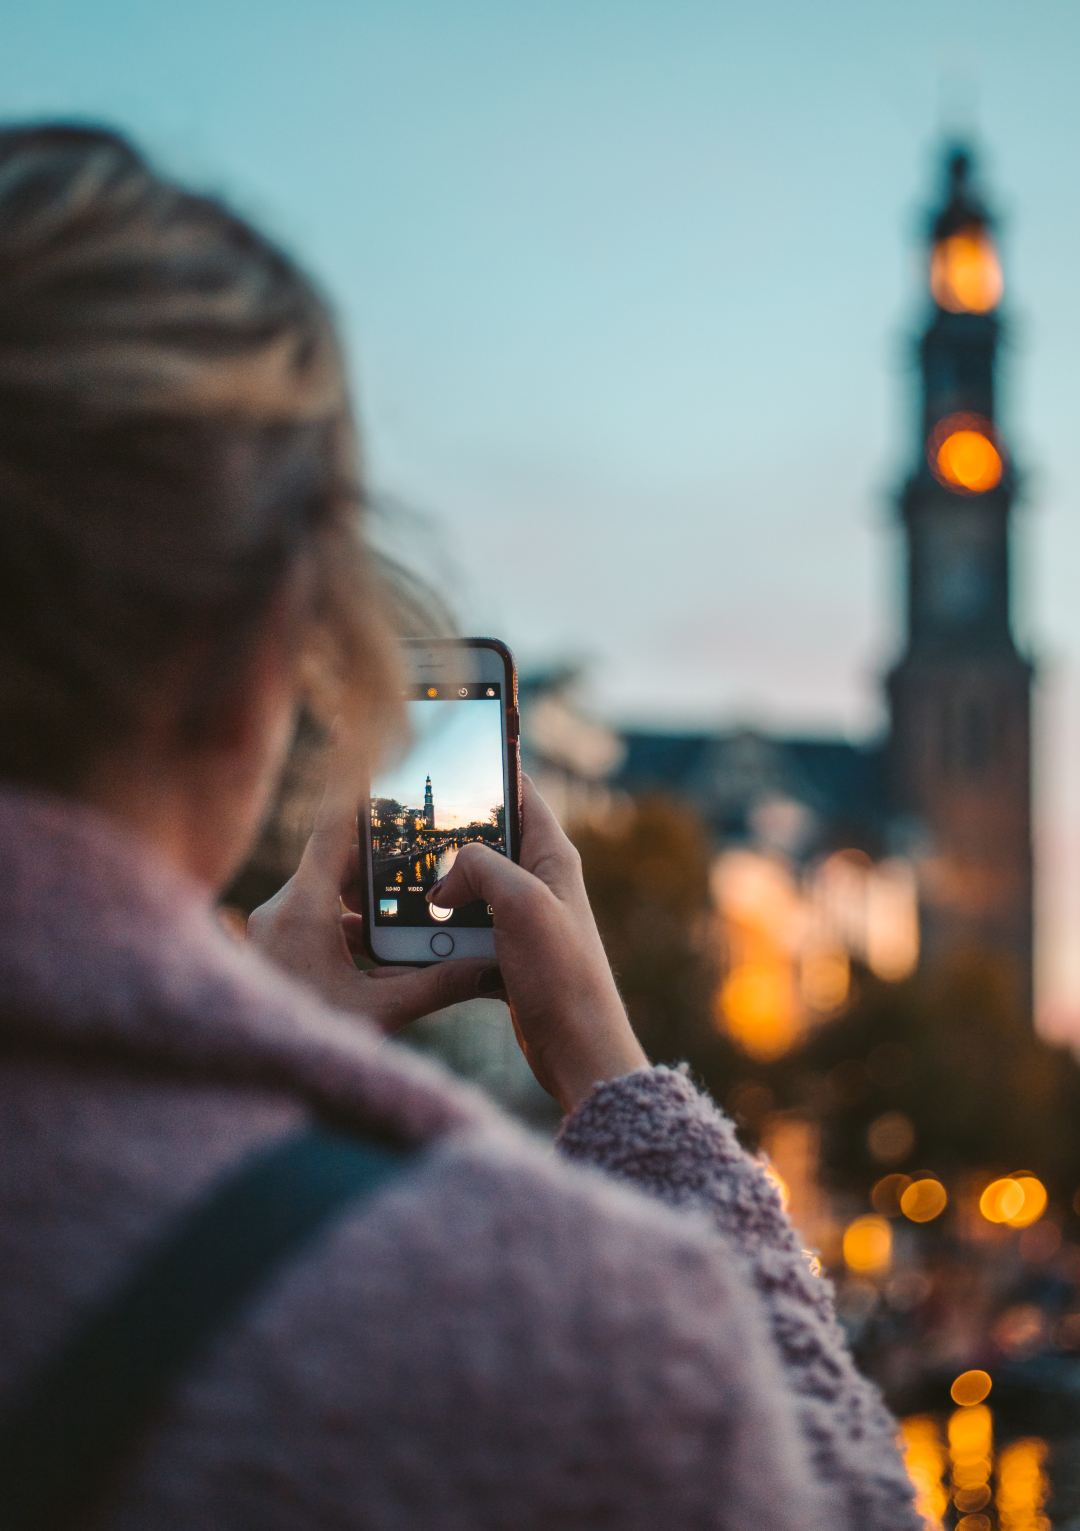 How To Use Instagram To Plan Your Travels